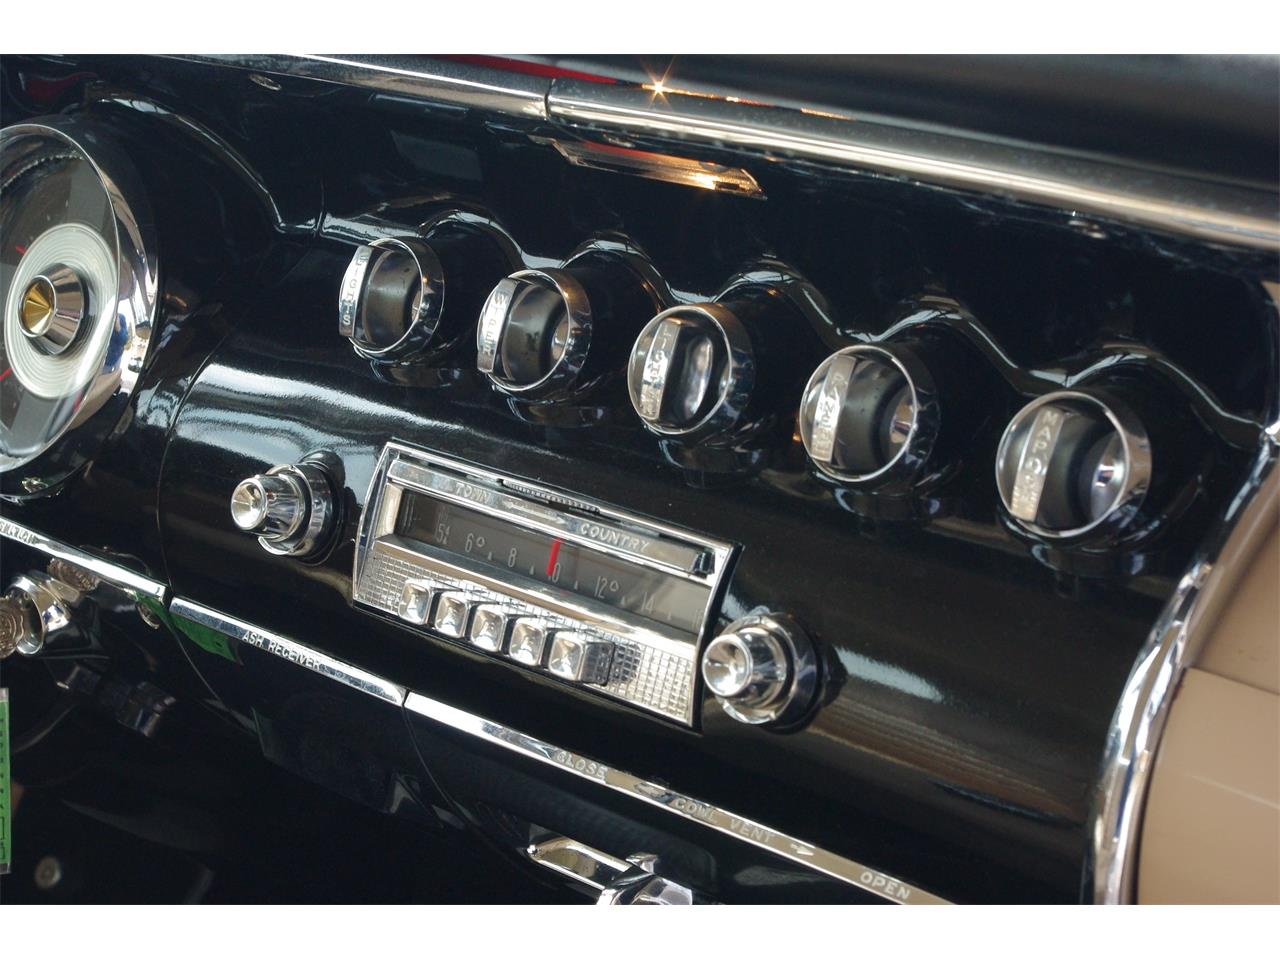 Large Picture of 1956 Chrysler 300 located in Missouri Auction Vehicle Offered by a Private Seller - NOG4